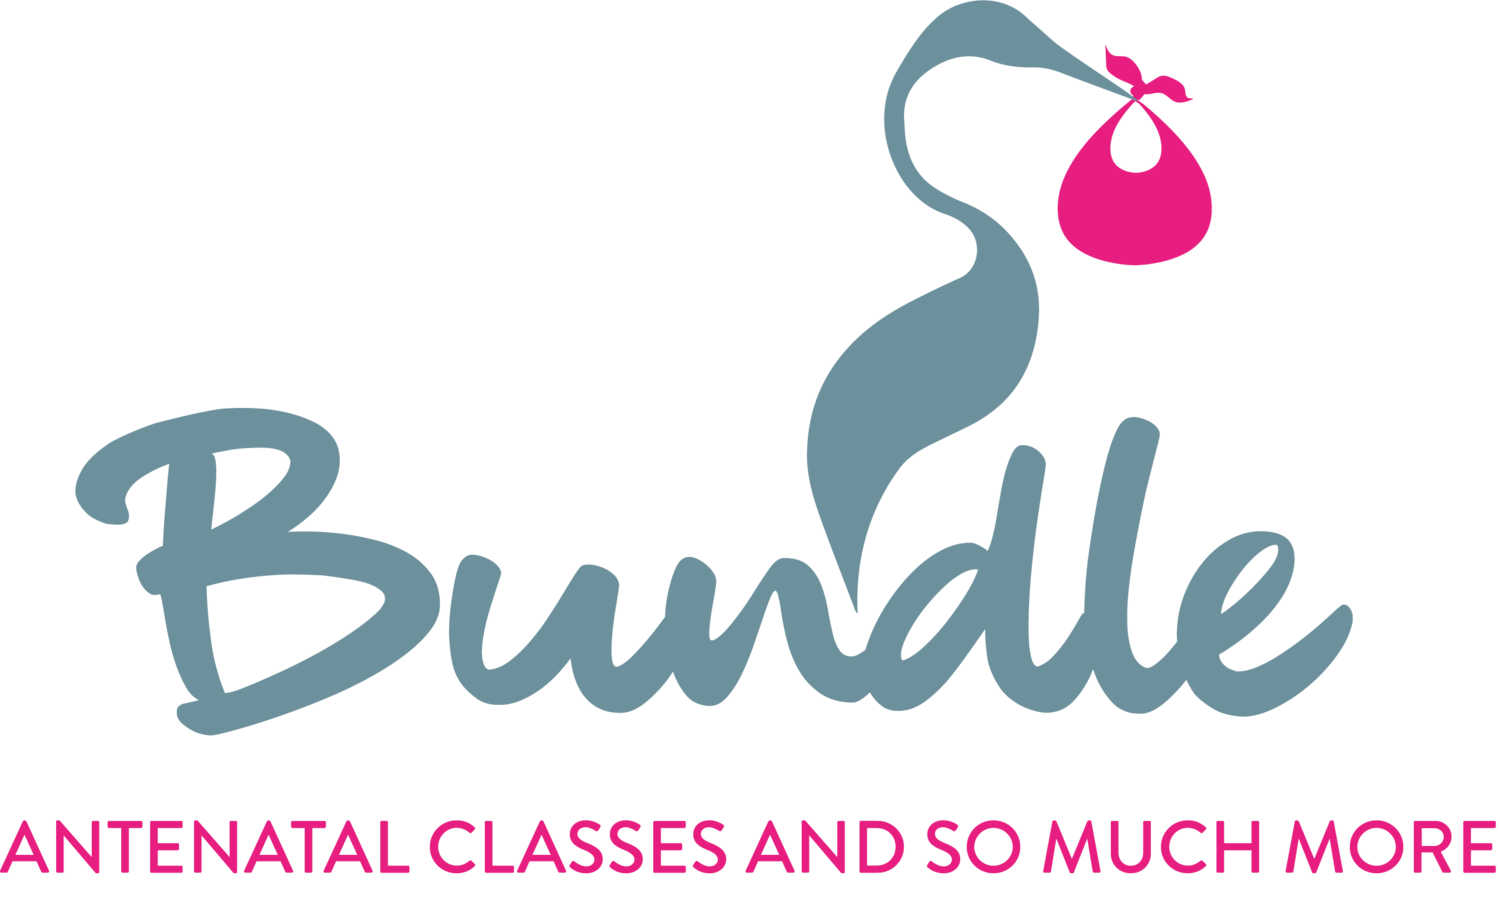 Bundle Antenatal Classes & So Much More